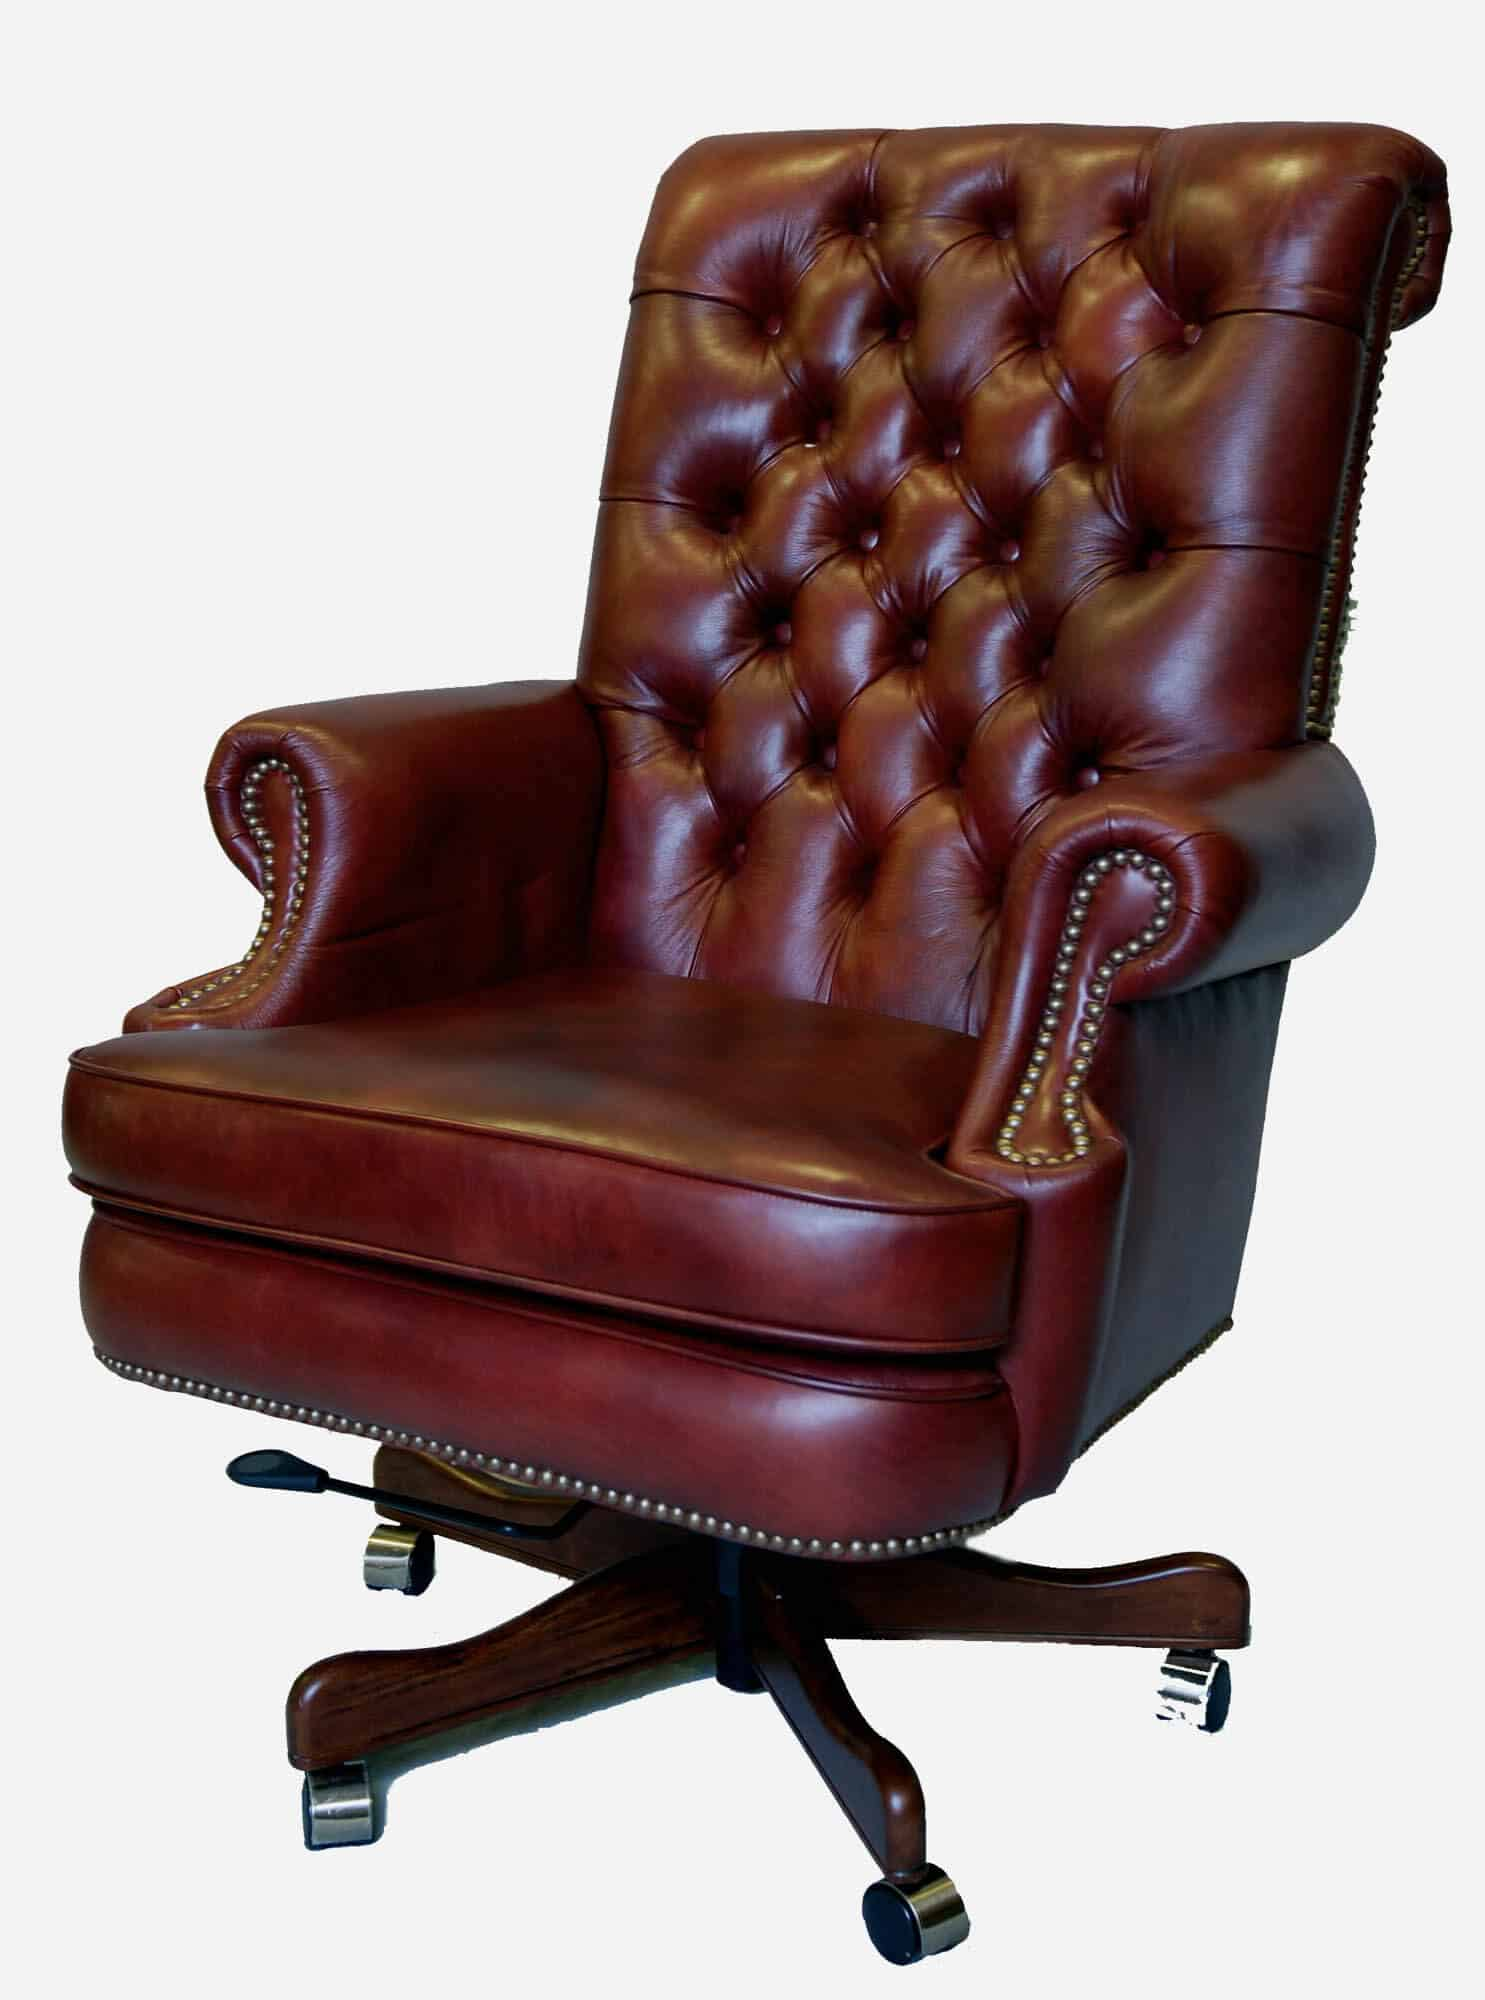 Office Chair Guide How To Buy A Desk Chair Top 10 Chairs Gentleman S Gazette